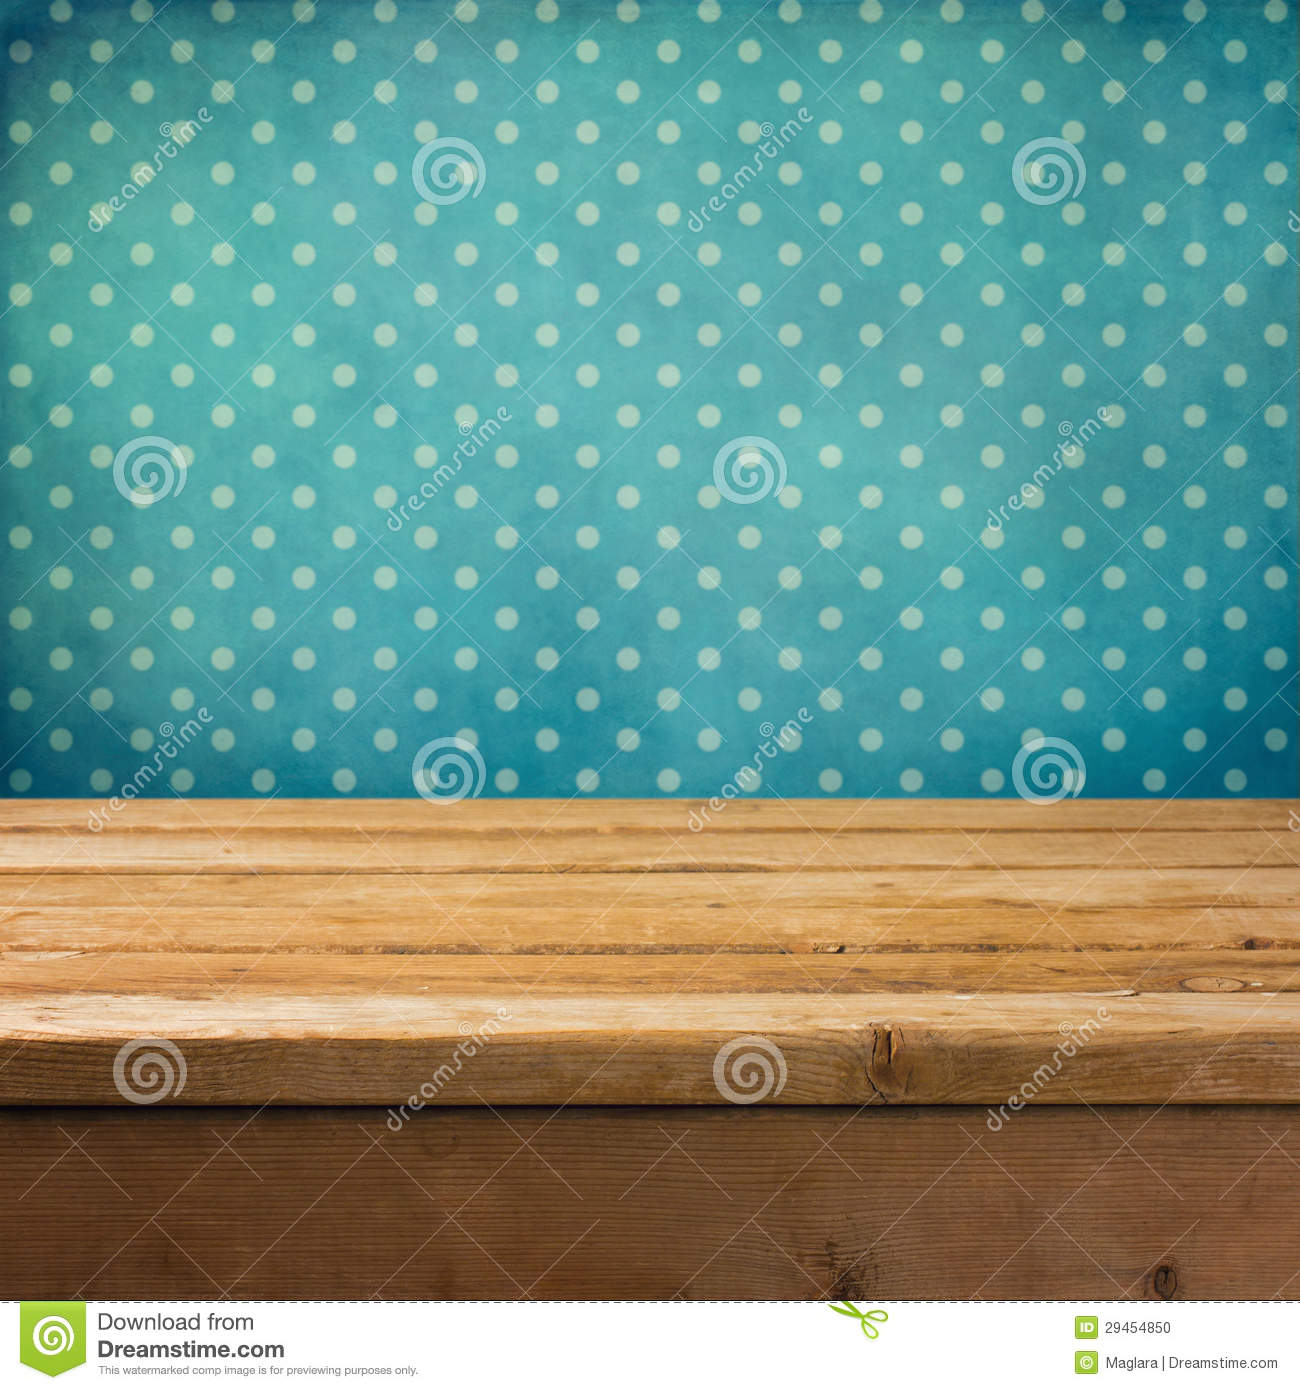 Background with wooden deck table stock photo image